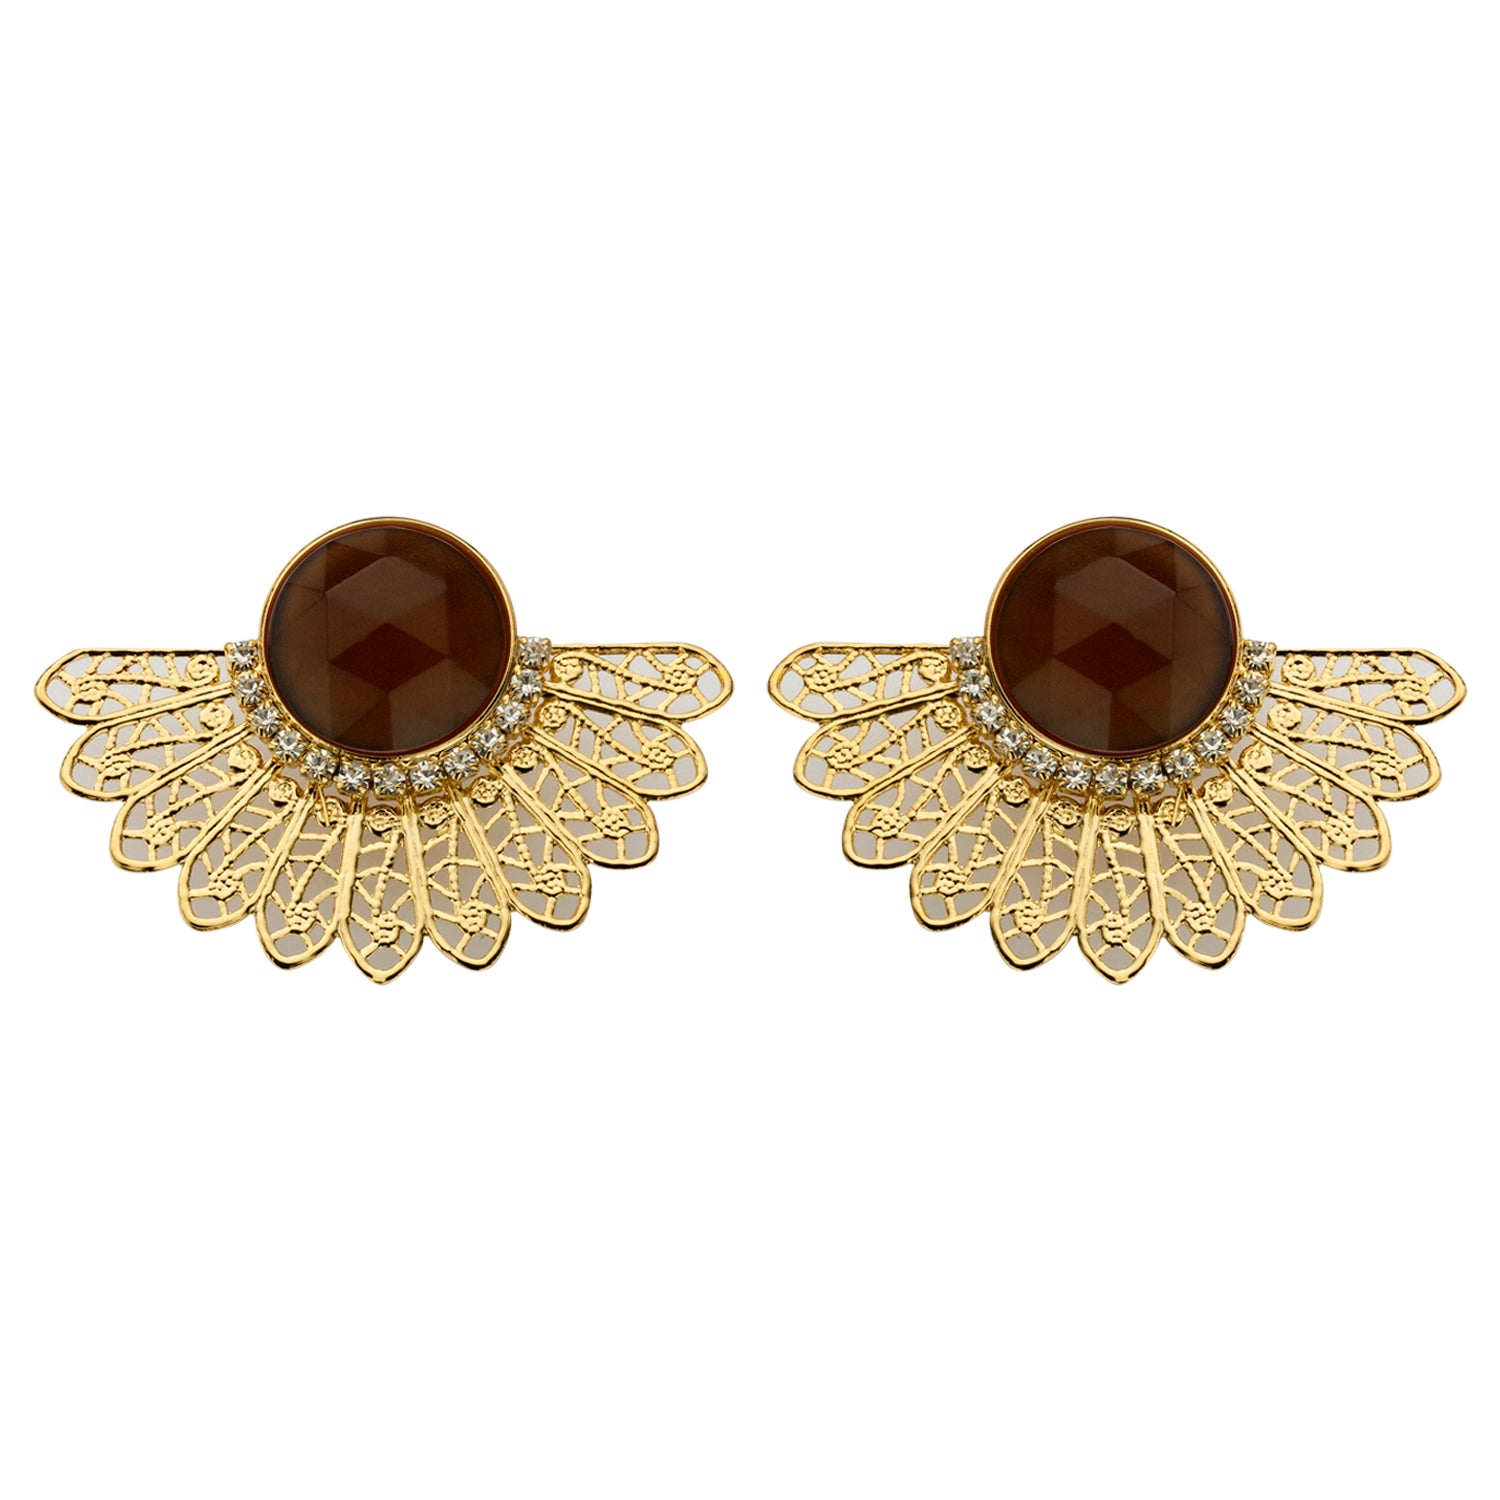 Van shortie cognac earrings